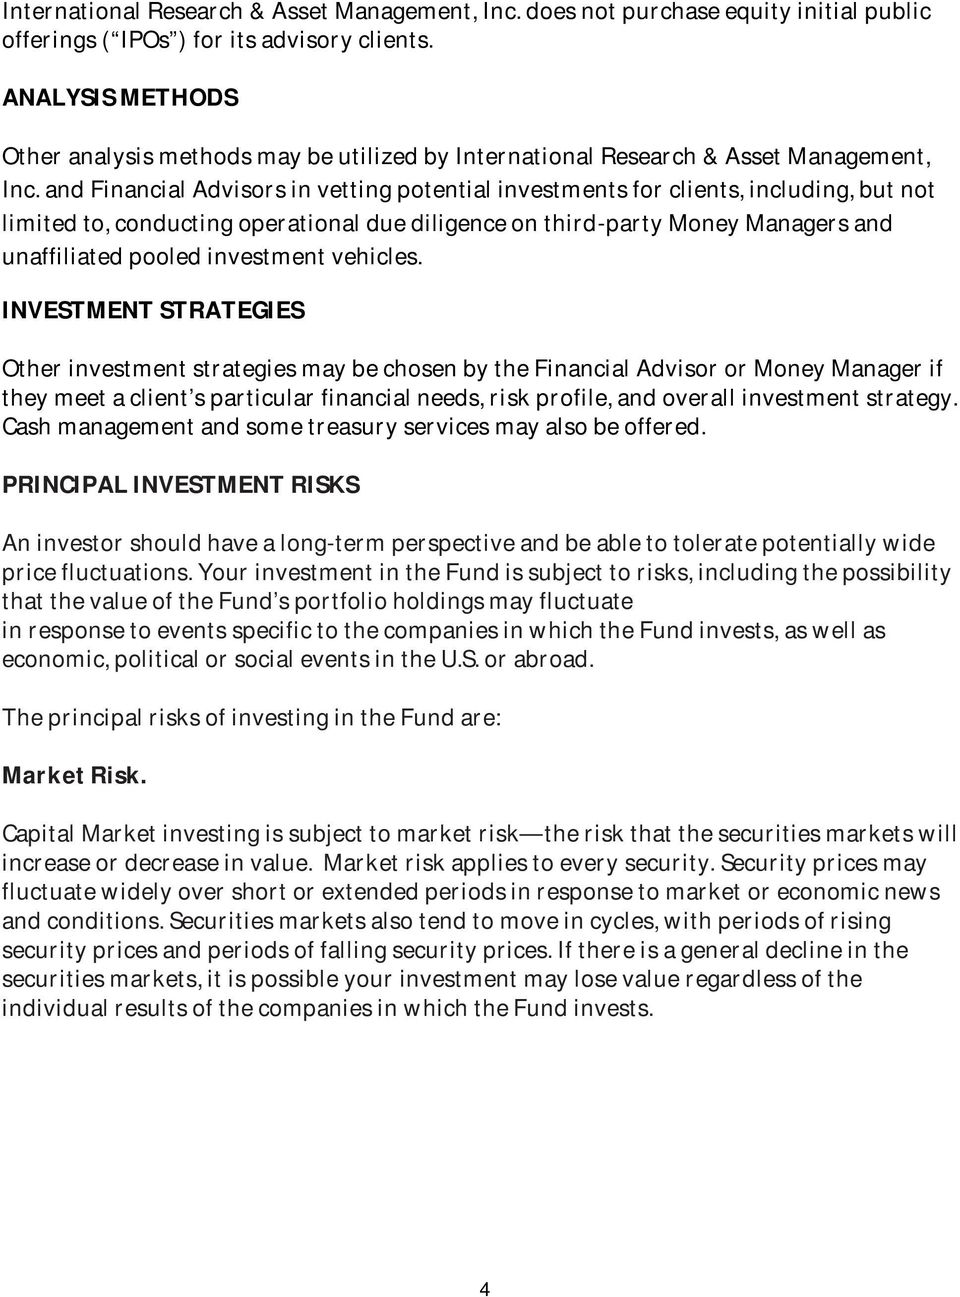 and Financial Advisors in vetting potential investments for clients, including, but not limited to, conducting operational due diligence on third-party Money Managers and unaffiliated pooled